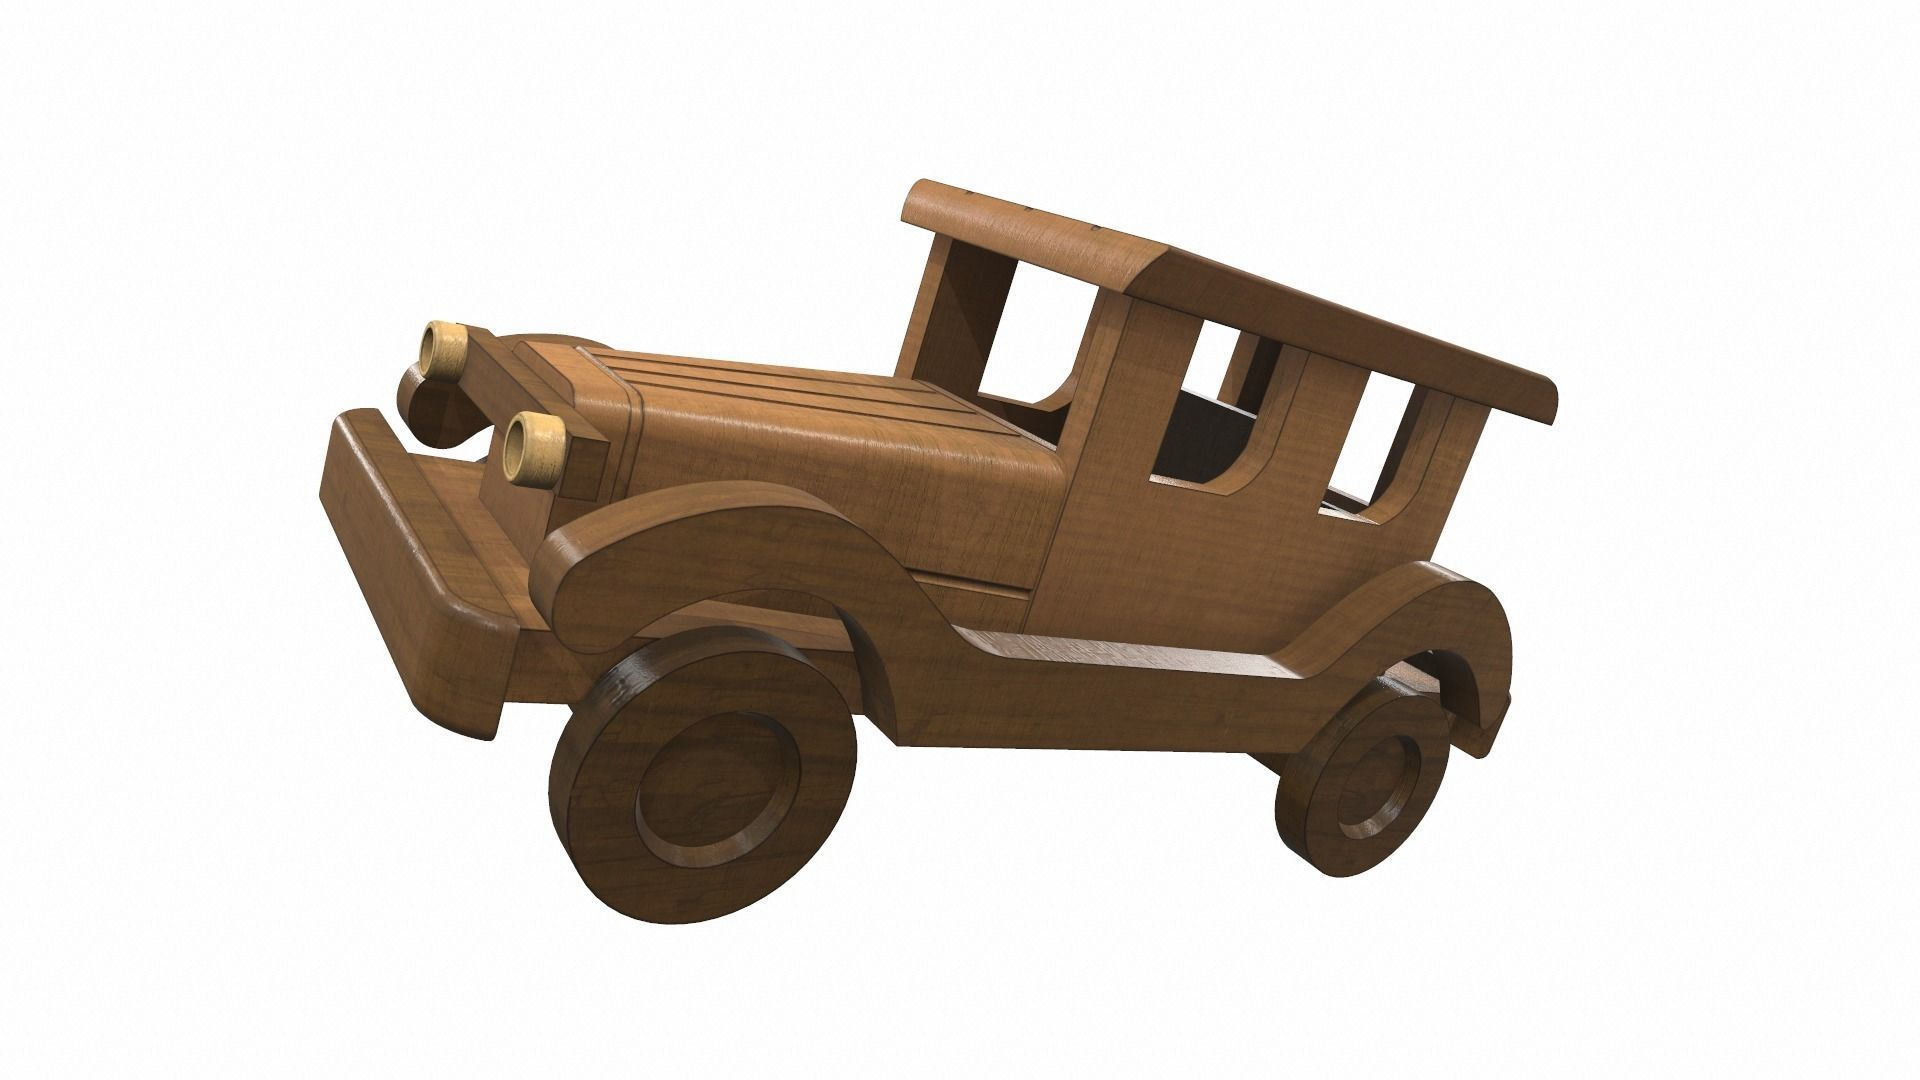 Wooden car toy retro 3